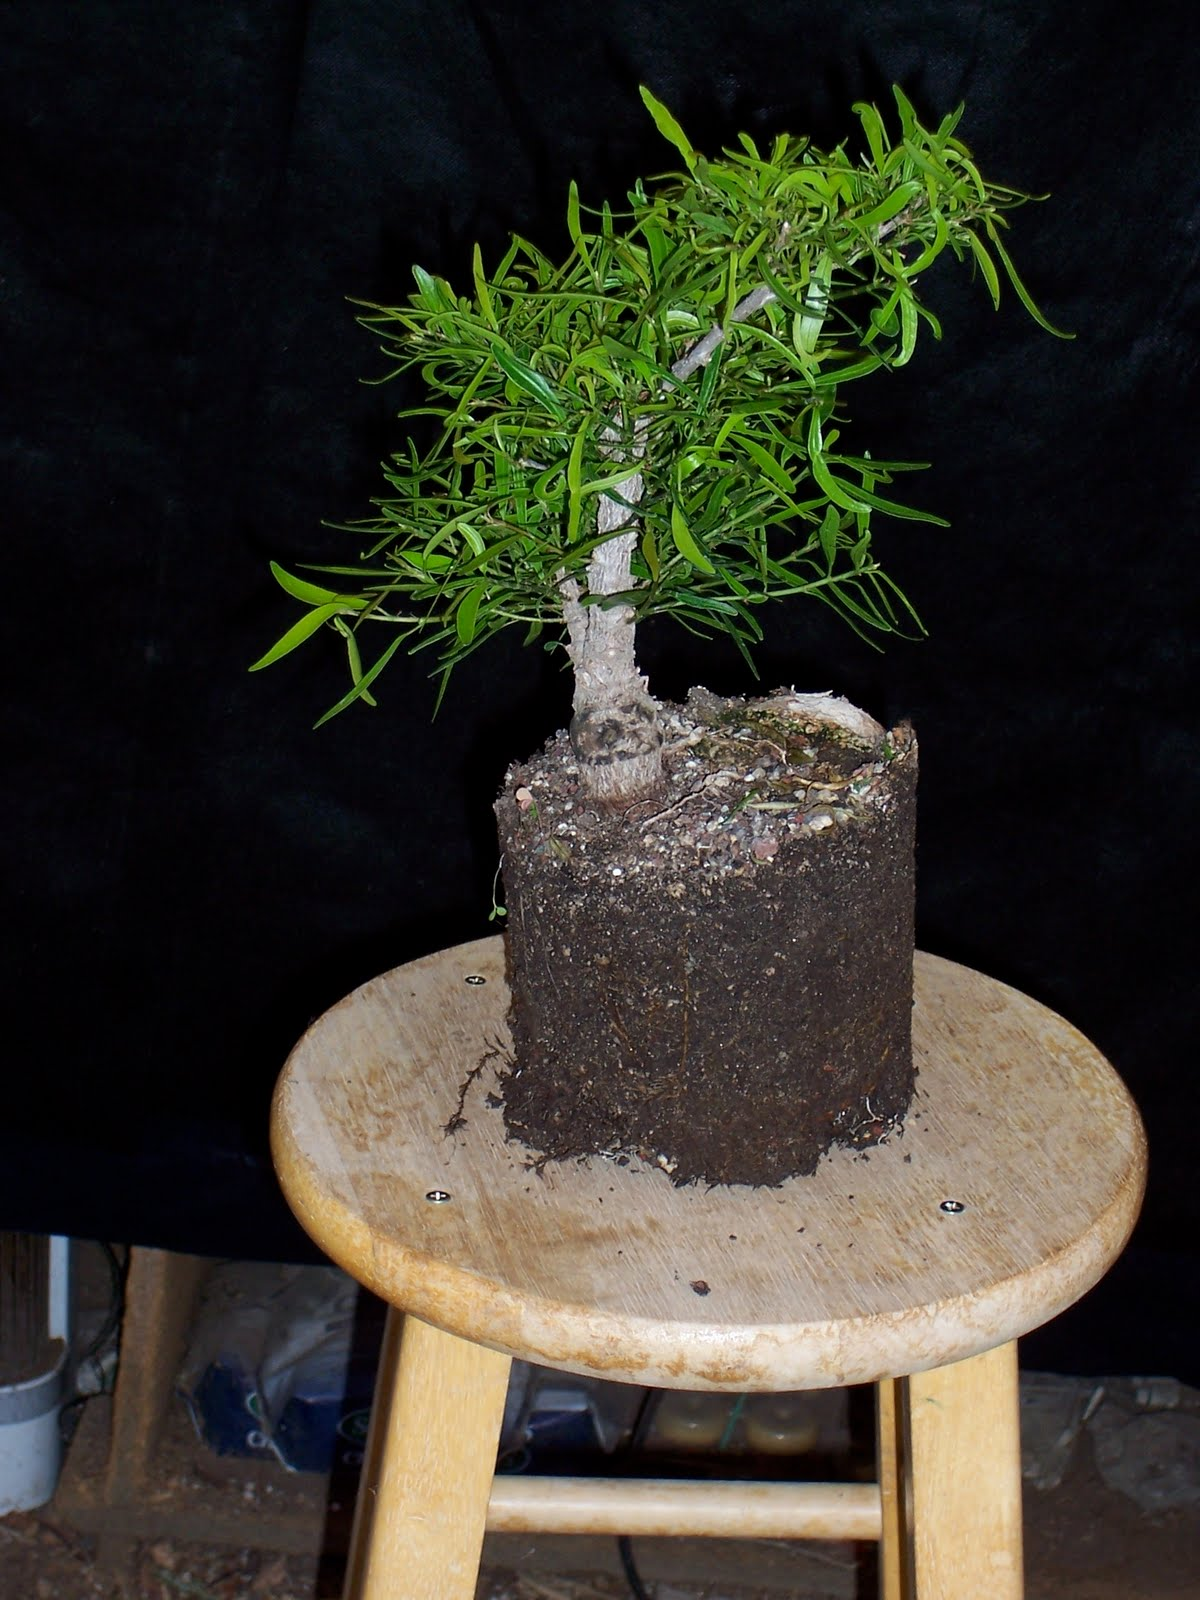 Bonsaibp39s Bonsai Blog Good Things Come In Small Packages